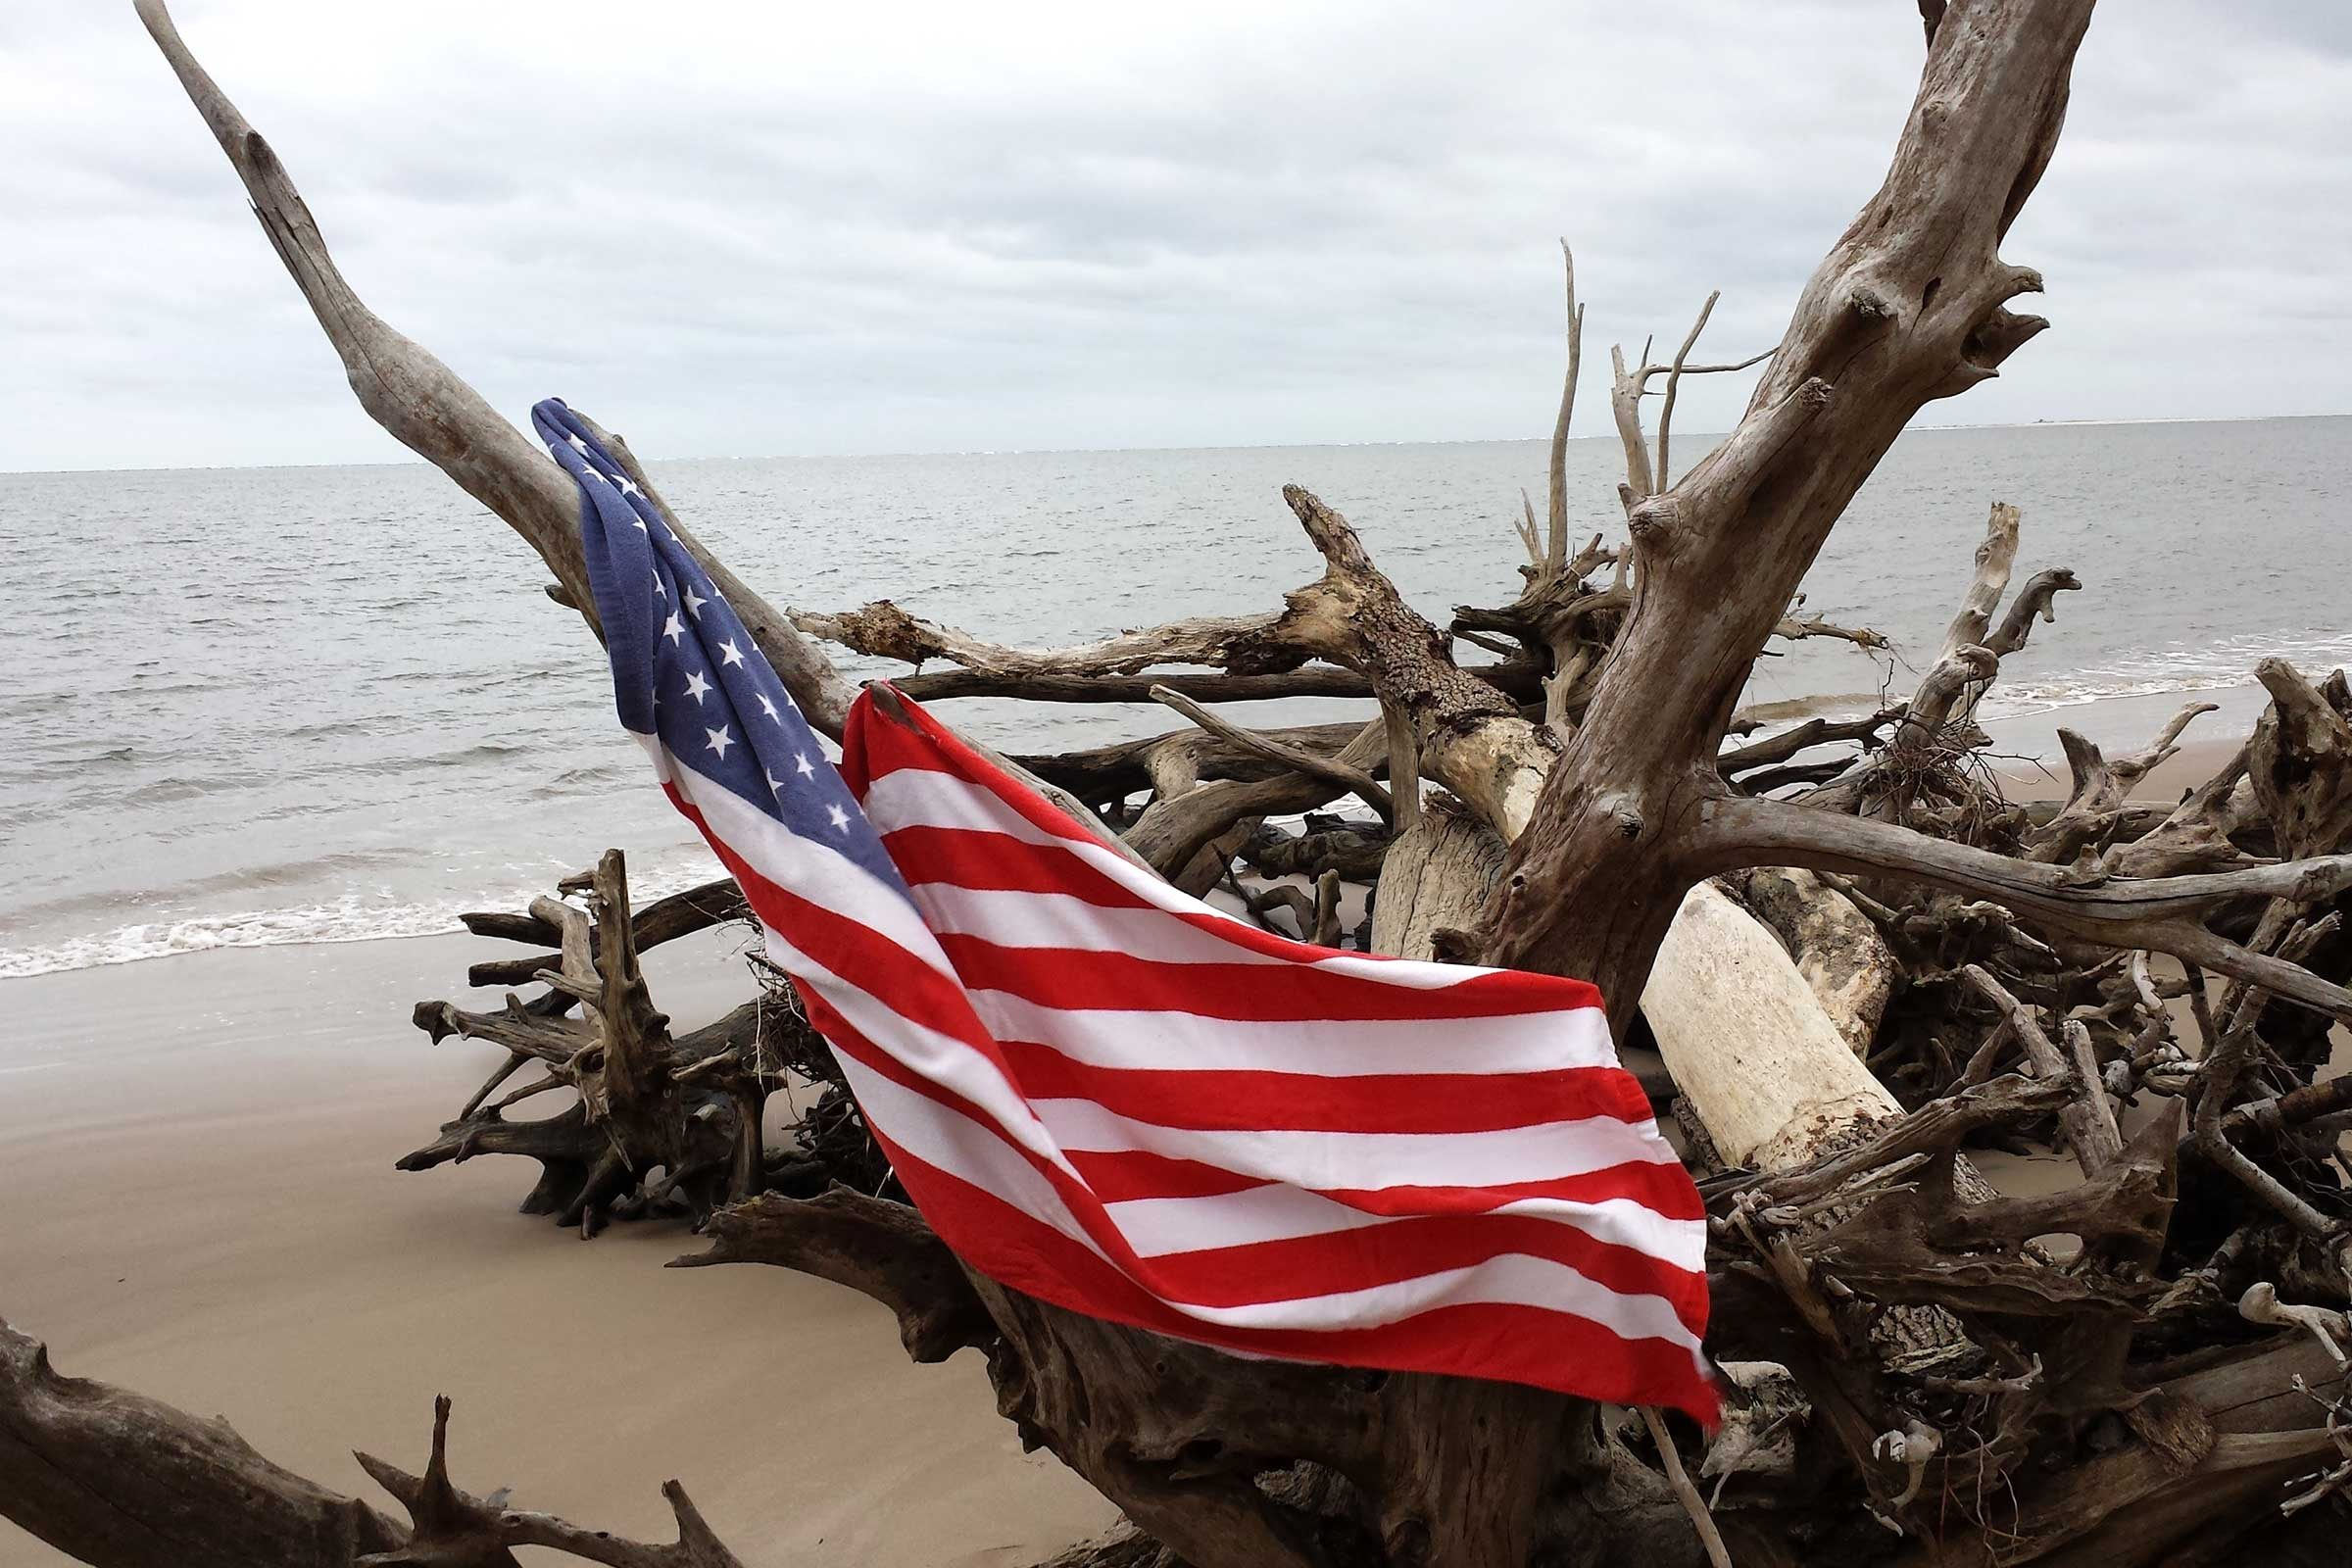 an american flag draped on some driftwood on a beach in florida